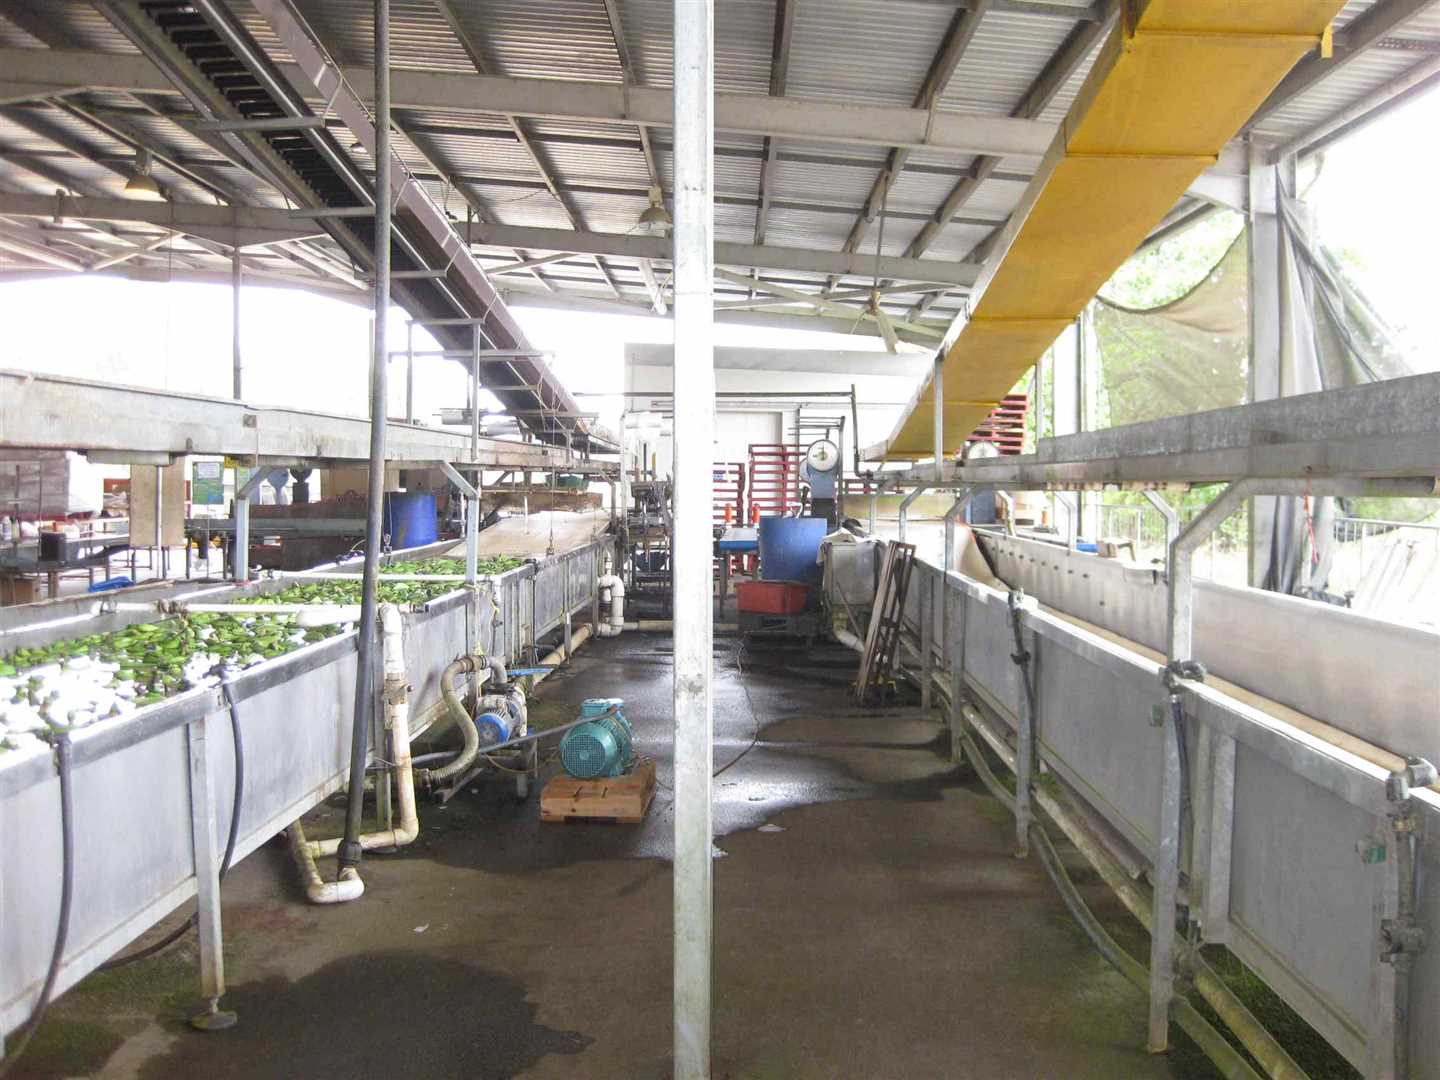 View of part of inside packing shed showing part of two banana troughs